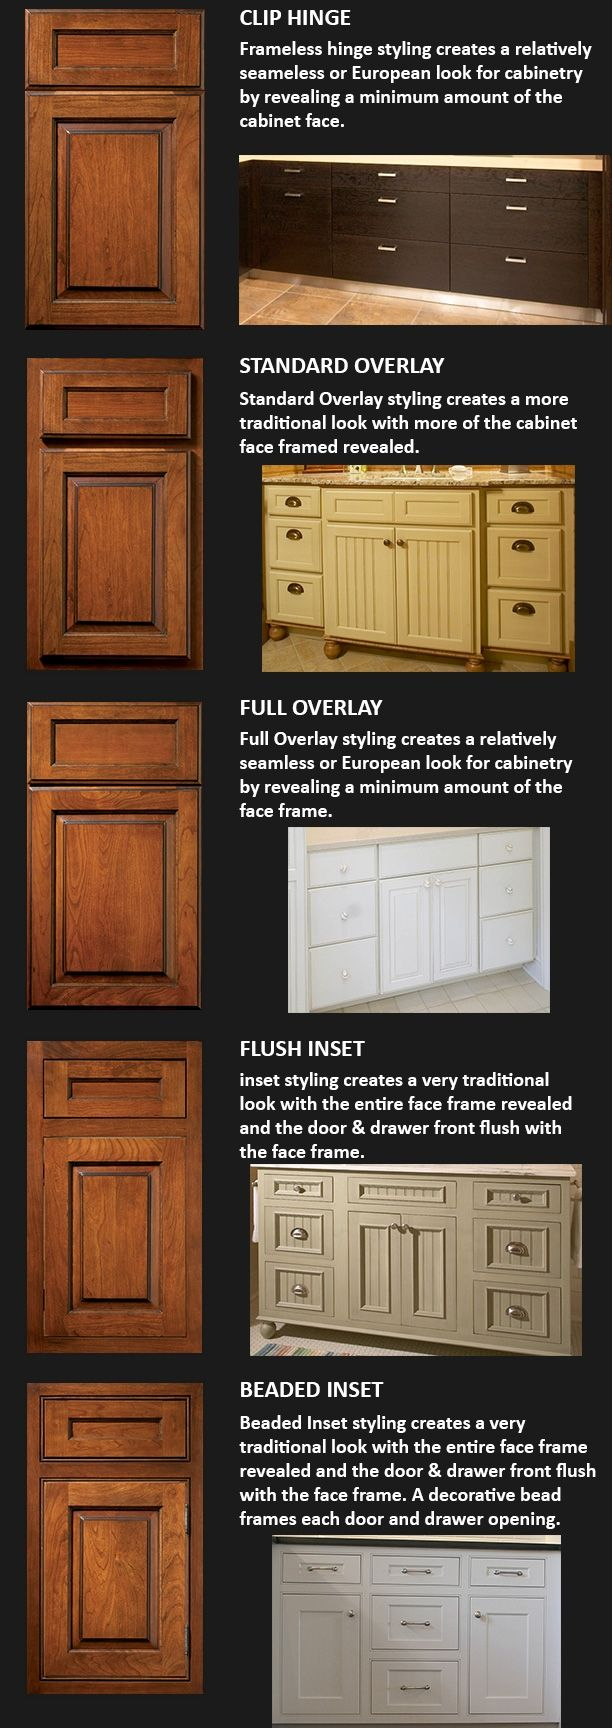 Double Demountable Cabinet Hinges The 25 Best Ideas About Inset Cabinet Hinges On Pinterest Diy